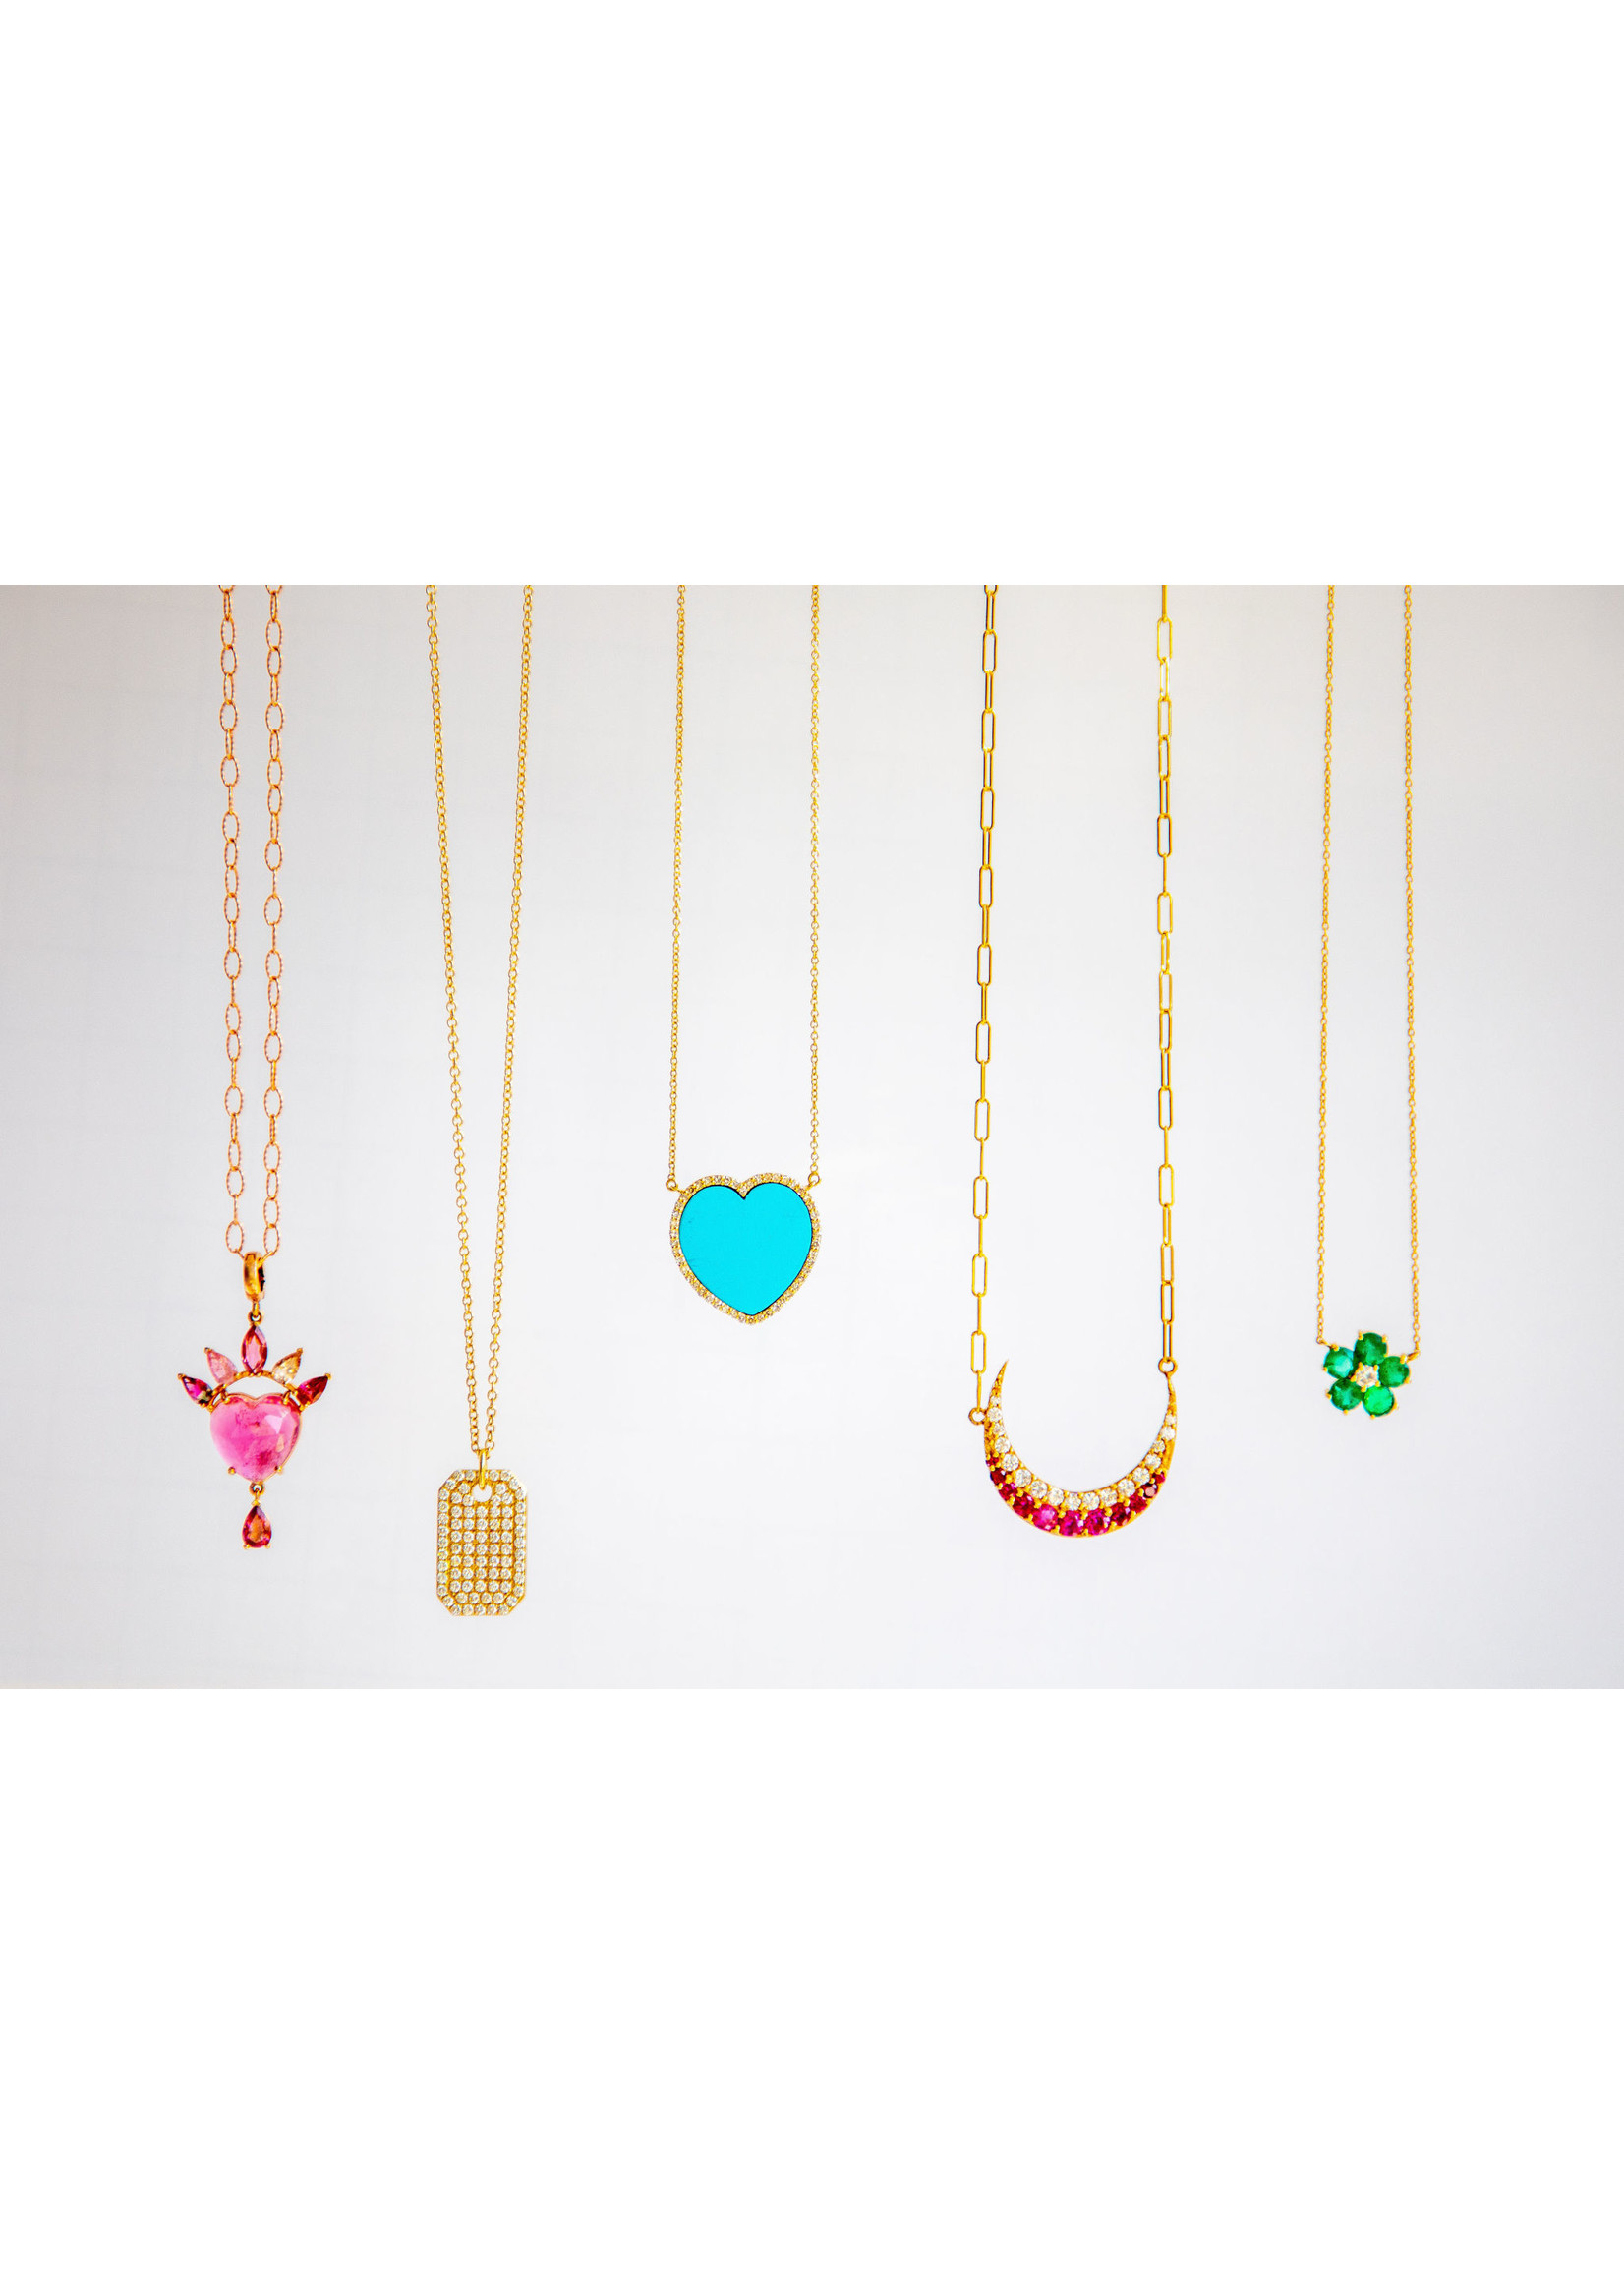 Jill Alberts Turquoise Heart with Diamond Border Necklace